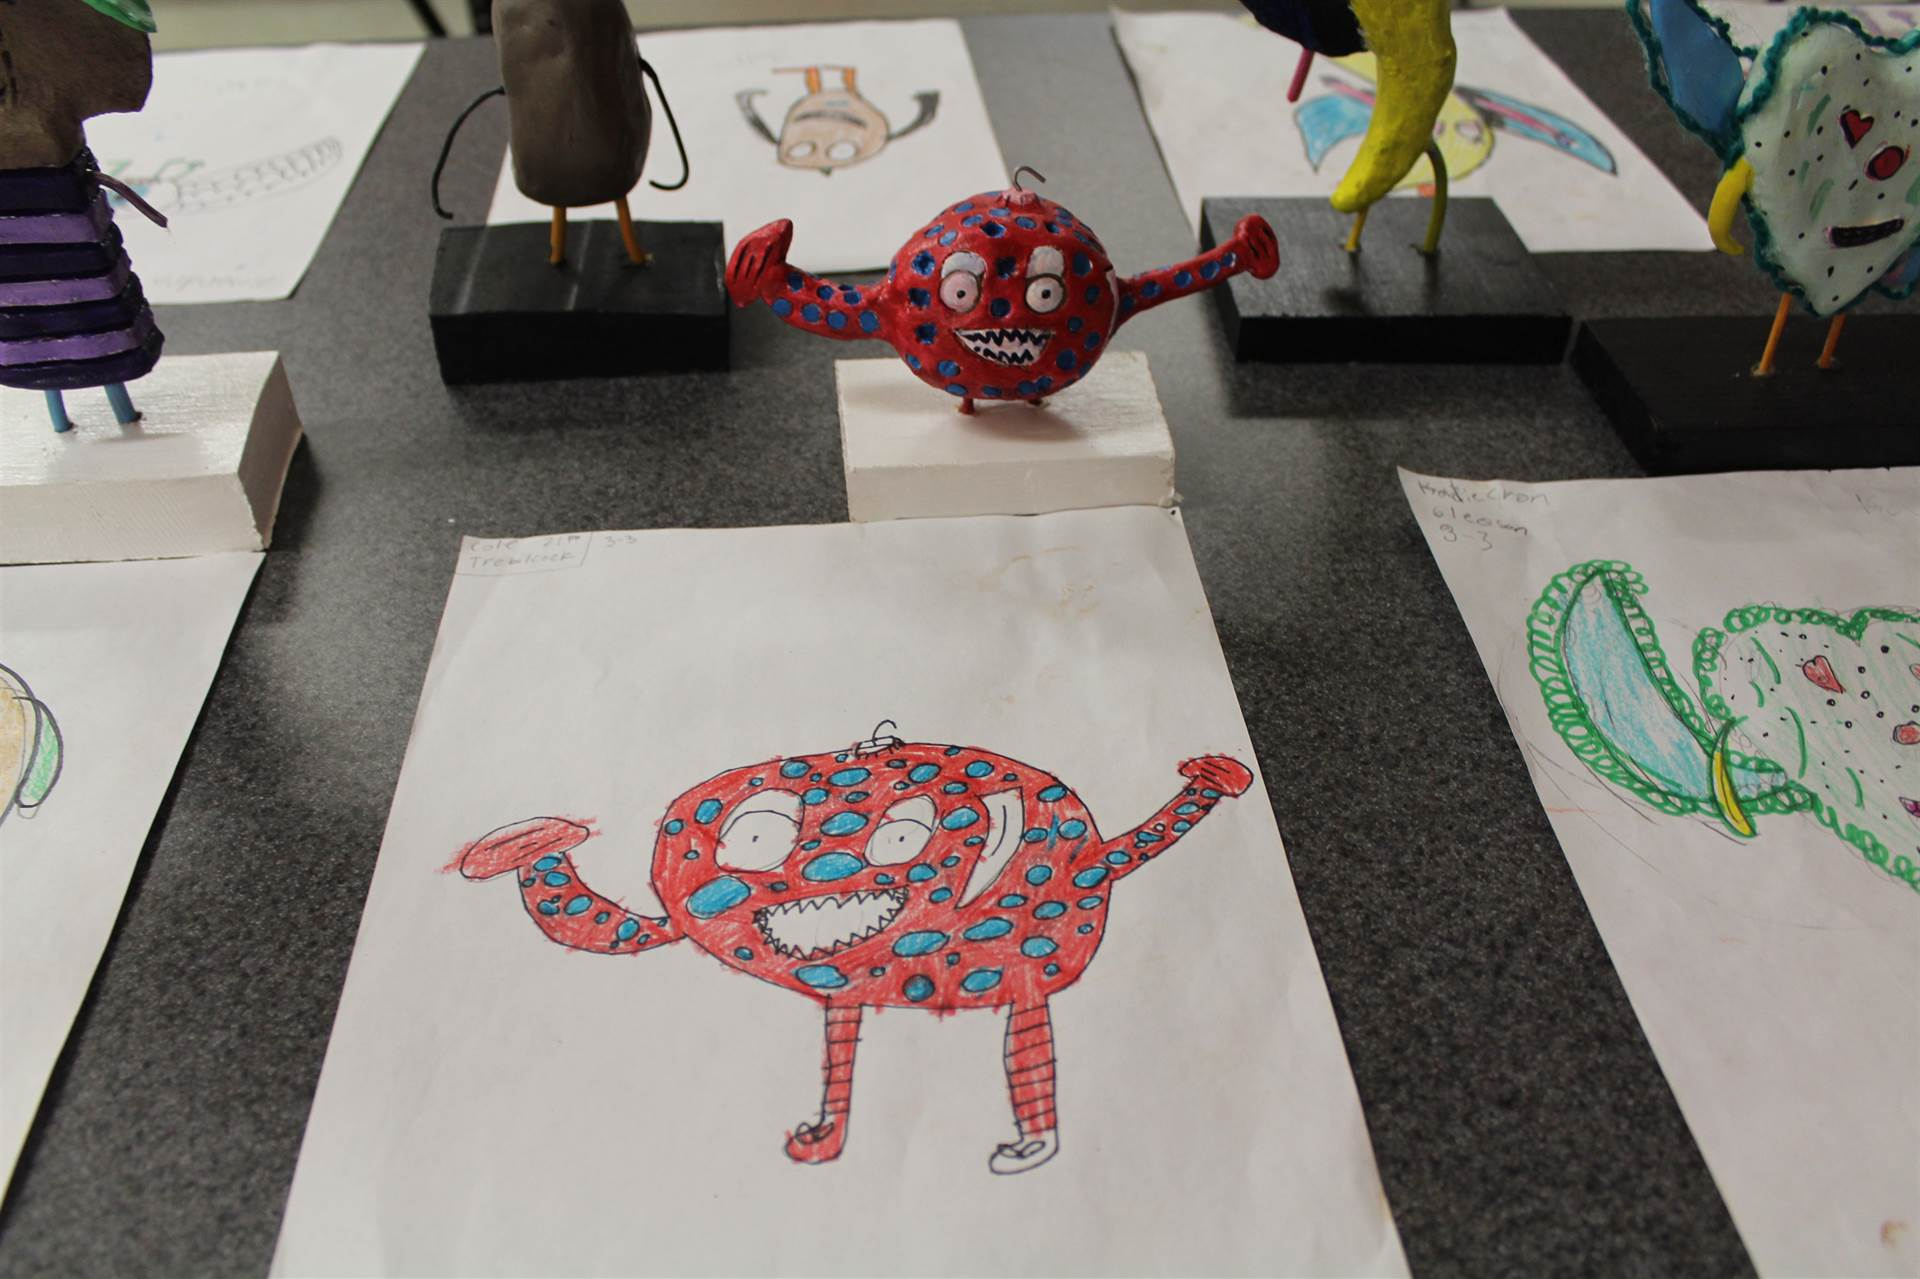 monster 3 d sculpture next to drawn picture 59